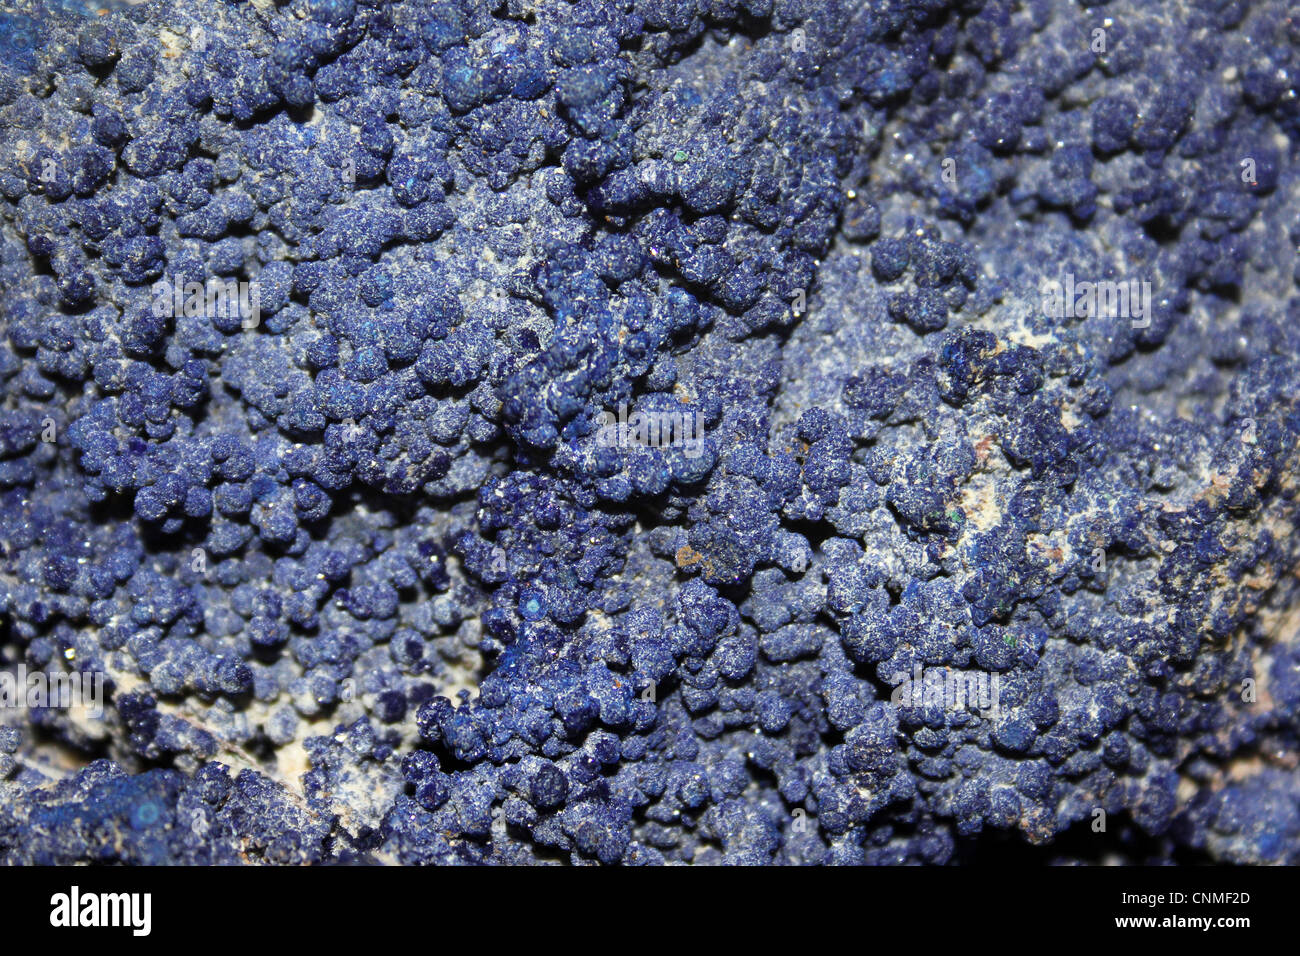 Azurite a.k.a. chessylite - a carbonate with the chemical formula Cu3(CO3)2(OH)2 - Stock Image